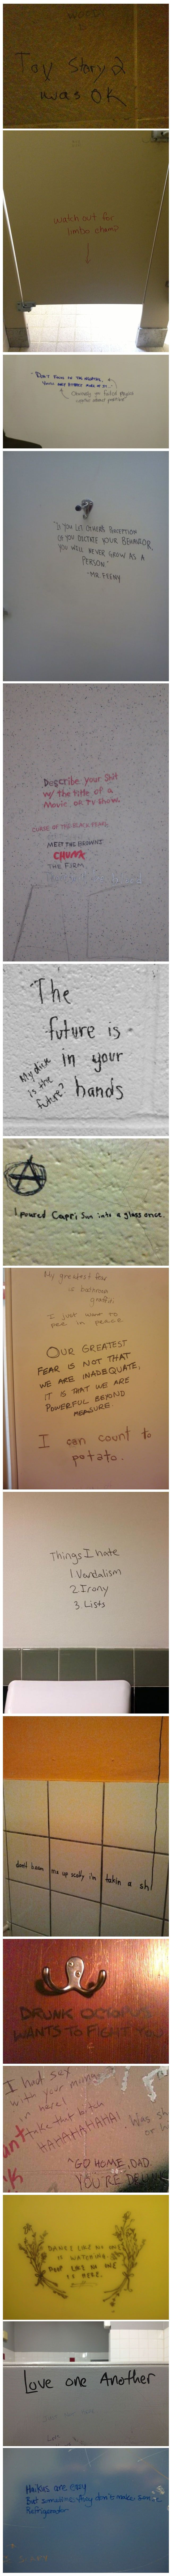 More Examples of Bathroom Stall Words of Wisdom   Mommy Has A Potty  MouthMommy Has A. 17 Best ideas about Bathroom Stall on Pinterest   Showers interior